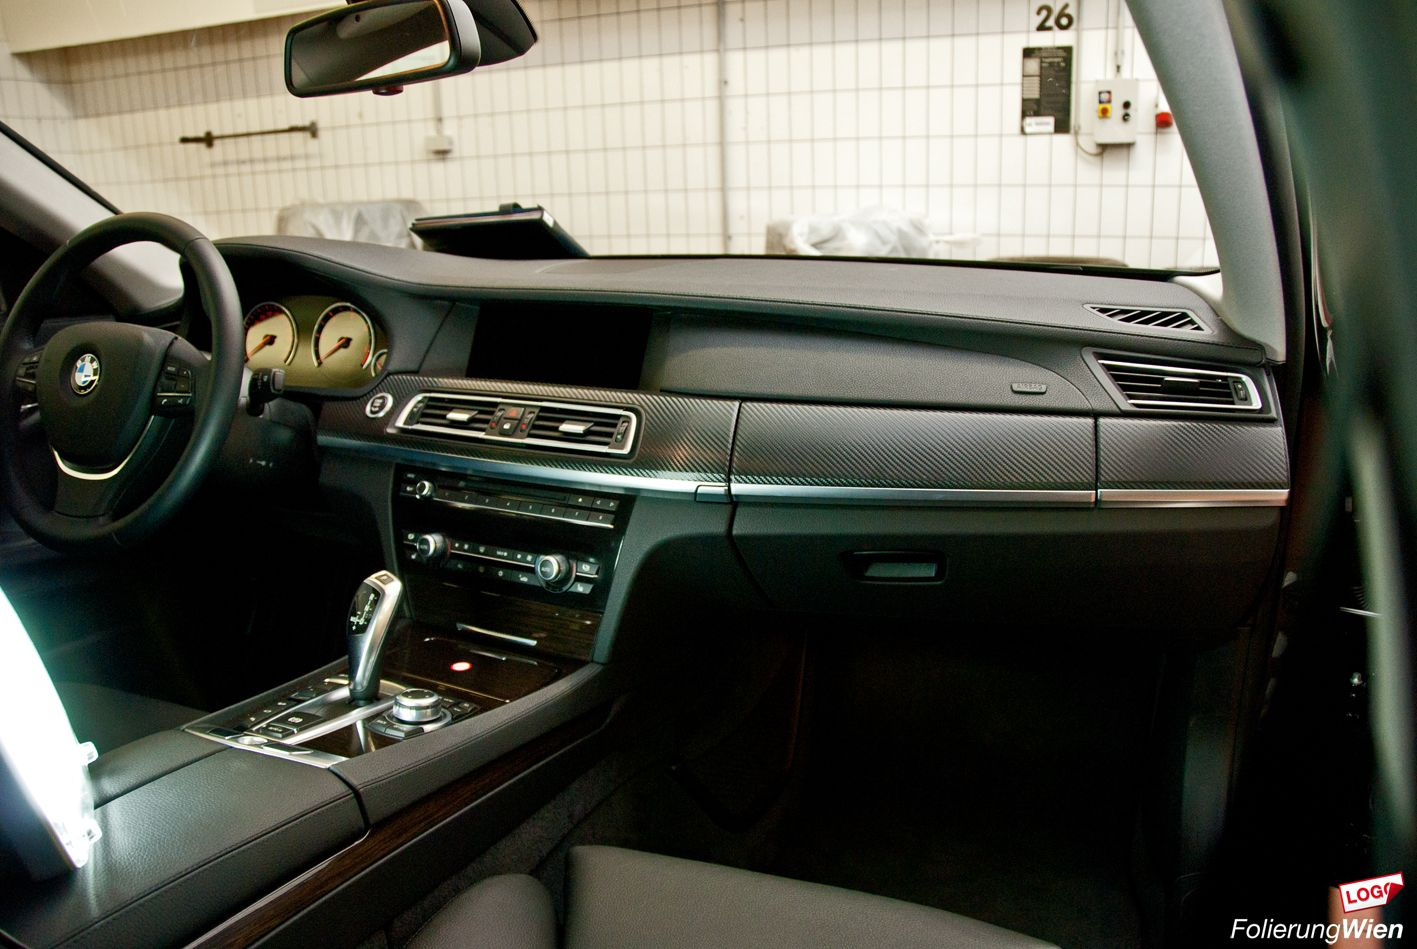 Auto Interieur Folieren Of Auto Leisten Folieren Innen Interieur Folieren